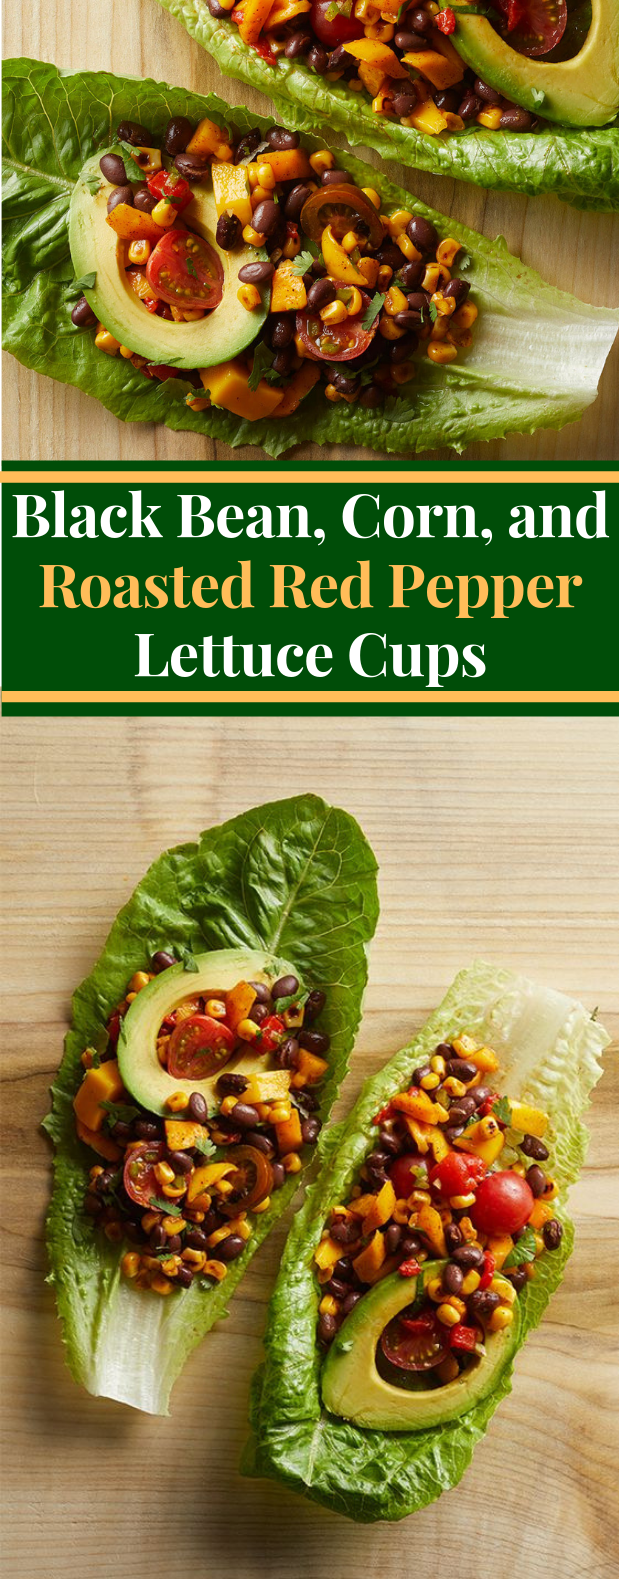 Black Bean, Corn, and Roasted Red Pepper Lettuce Cups #salads #vegetarian